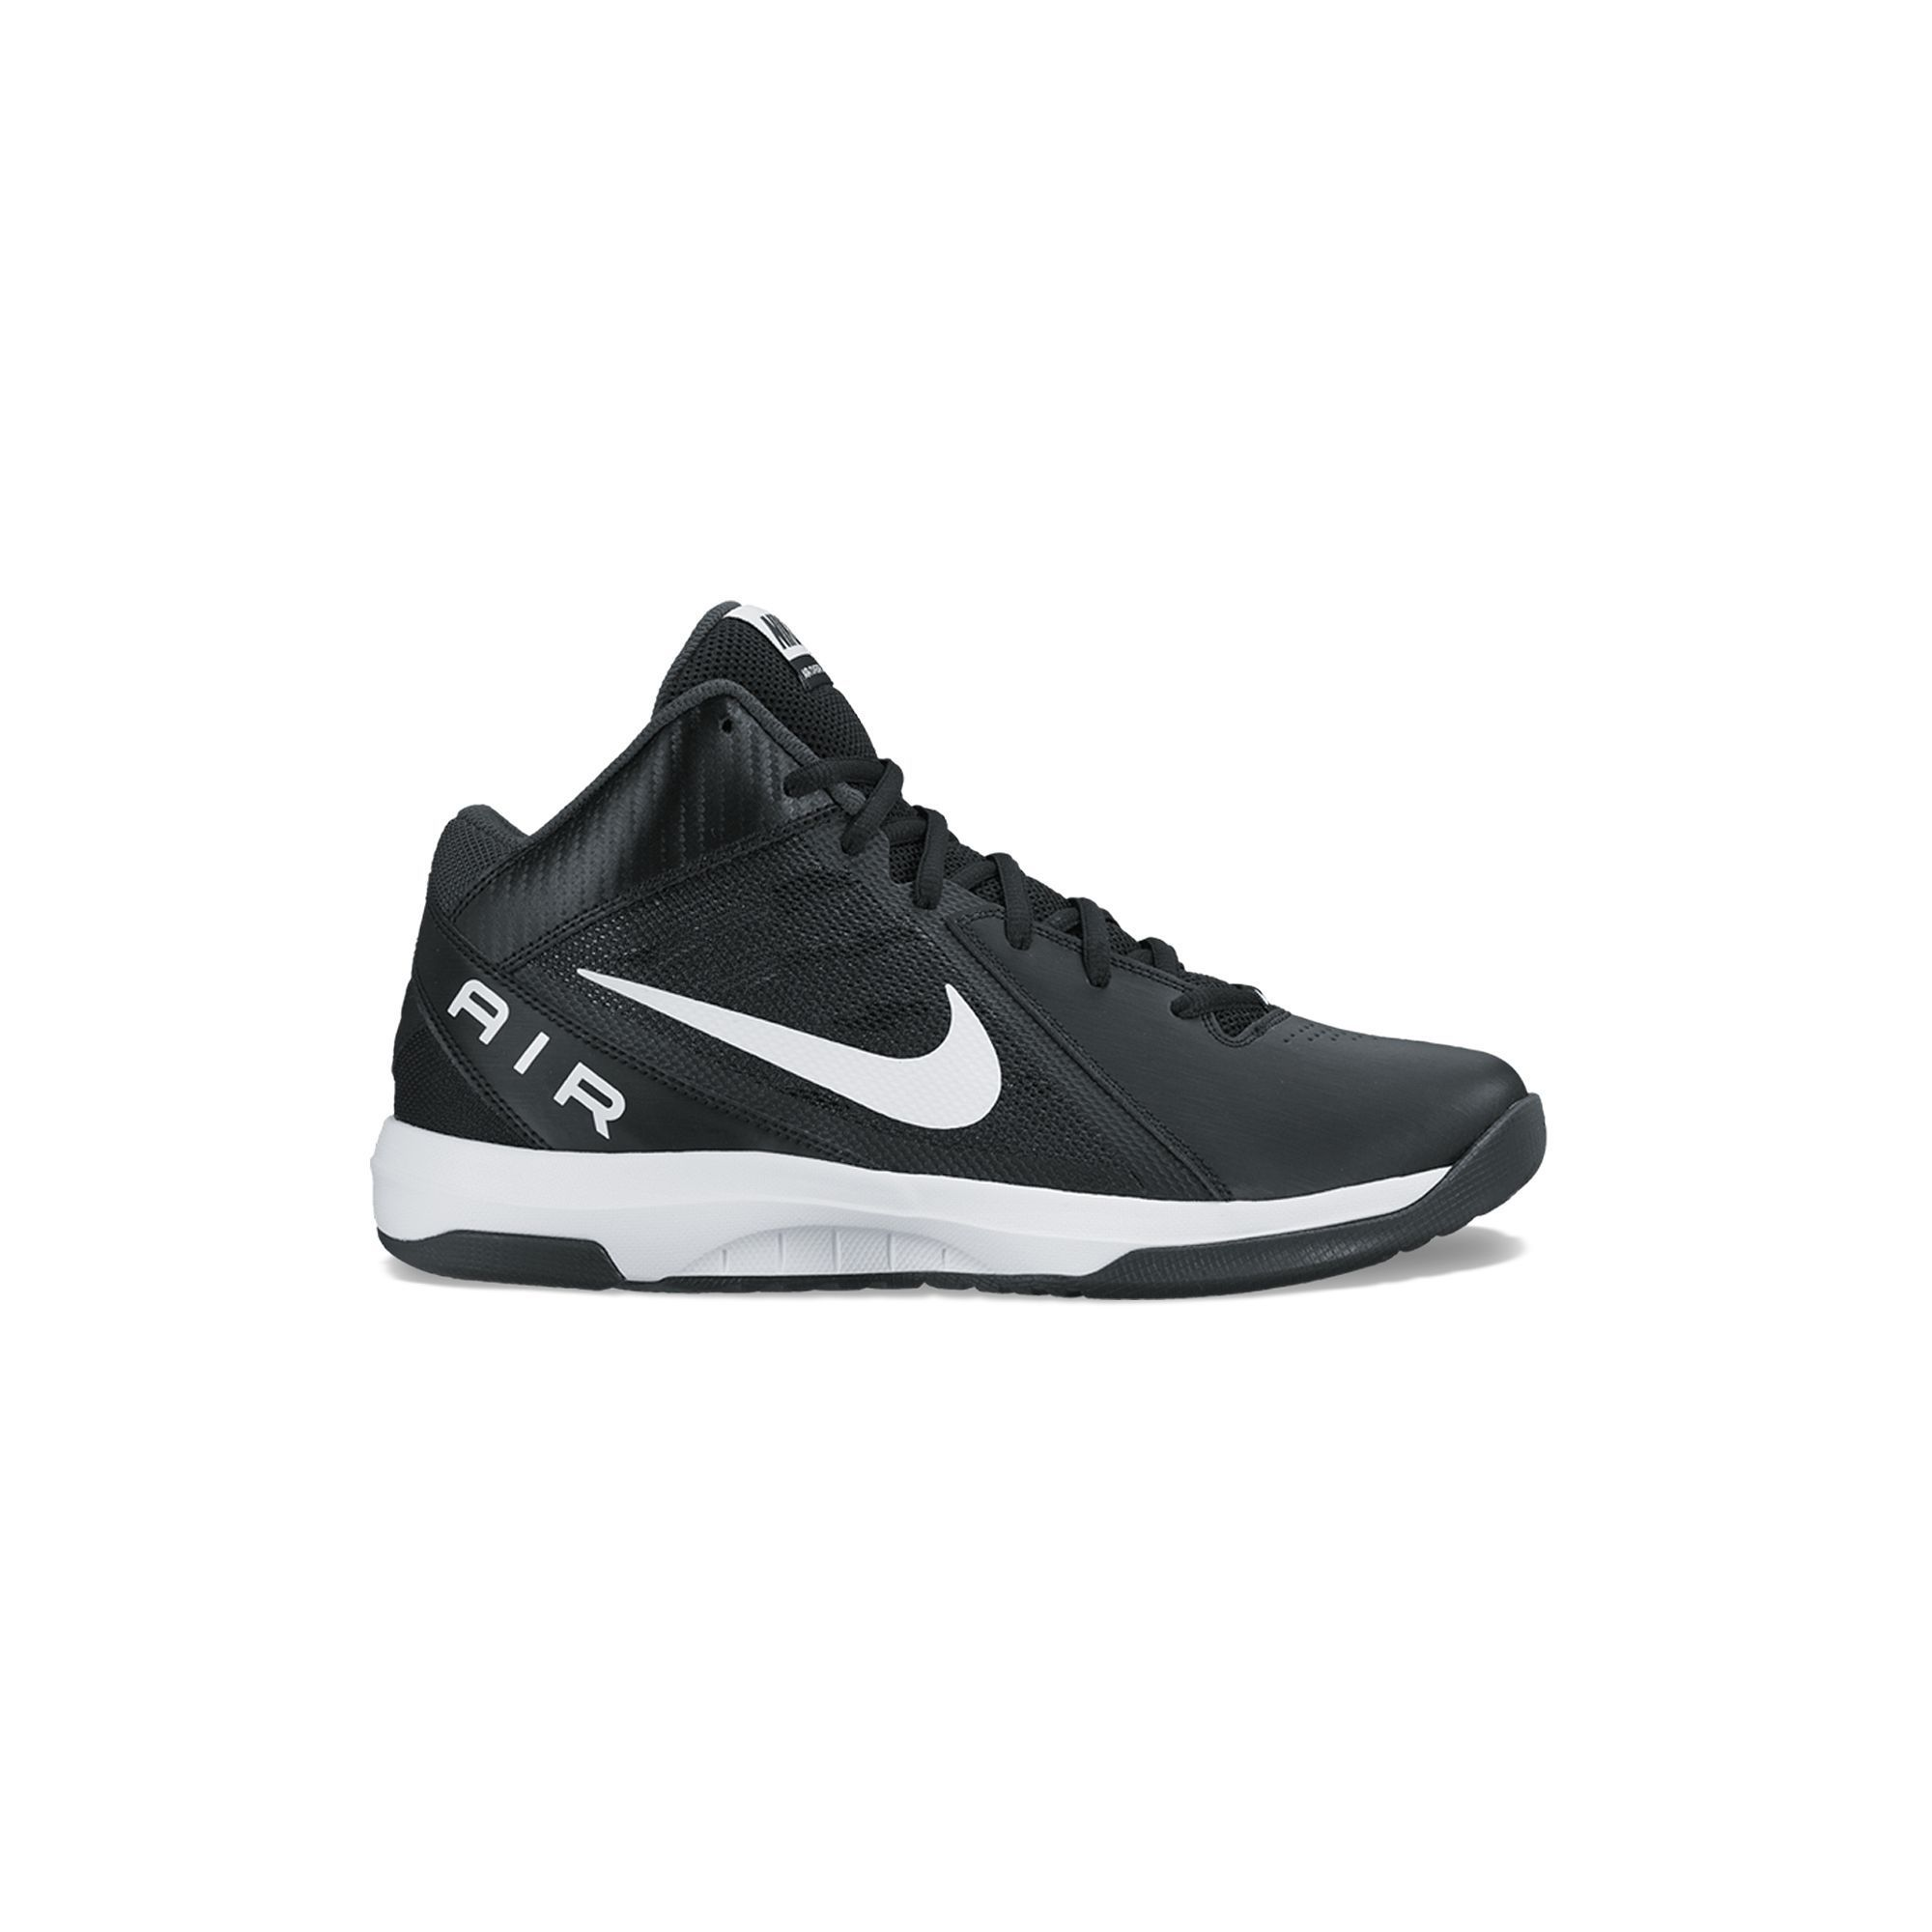 805a4fd9081a Nike The Air Overplay IX Men s Basketball Shoes